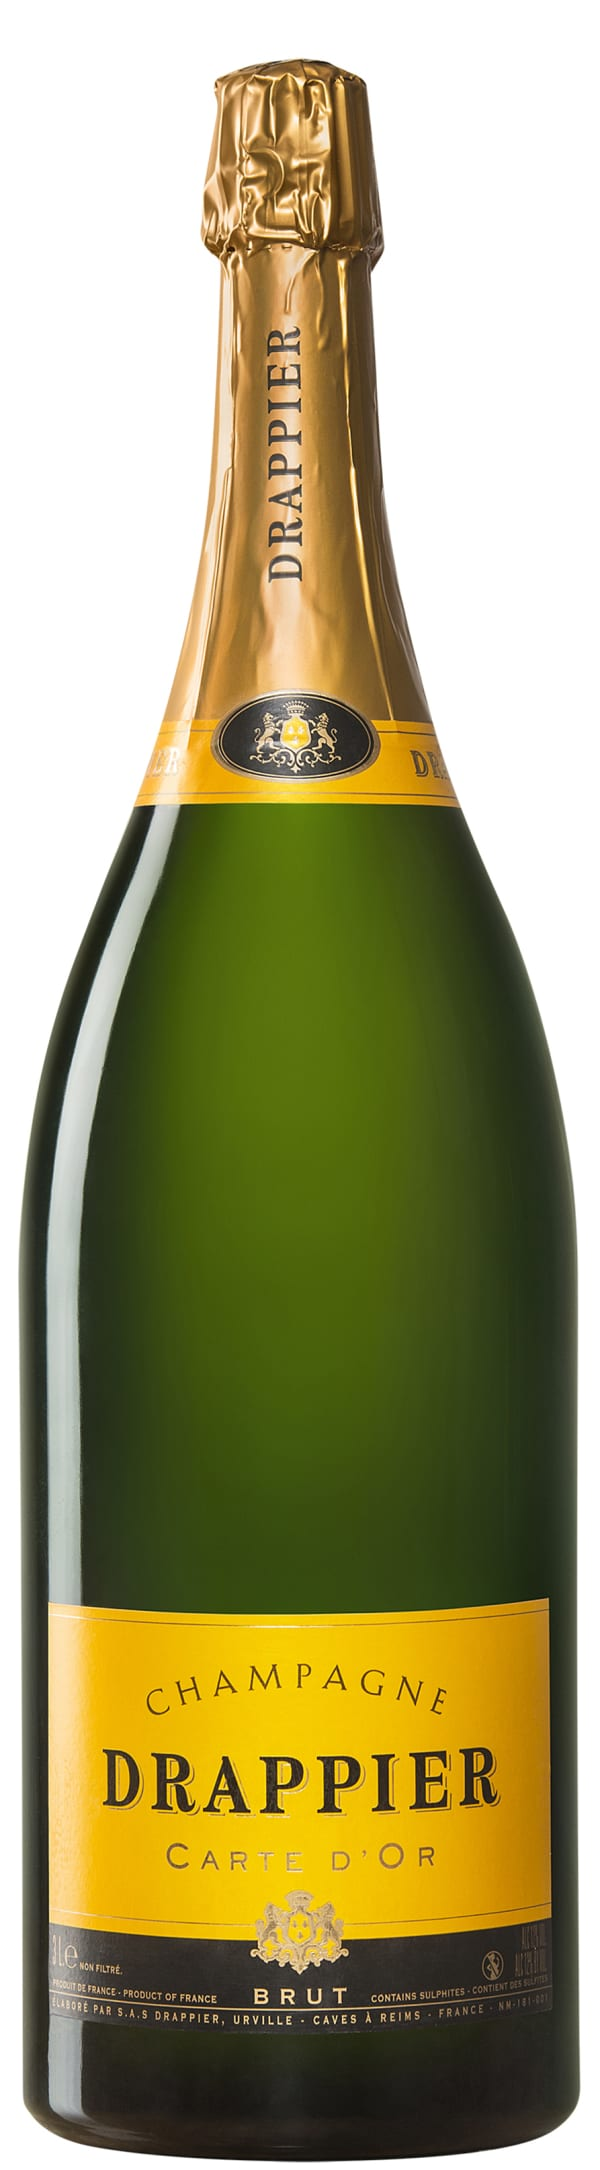 Drappier Carte d'Or Champagne Brut Jeroboam